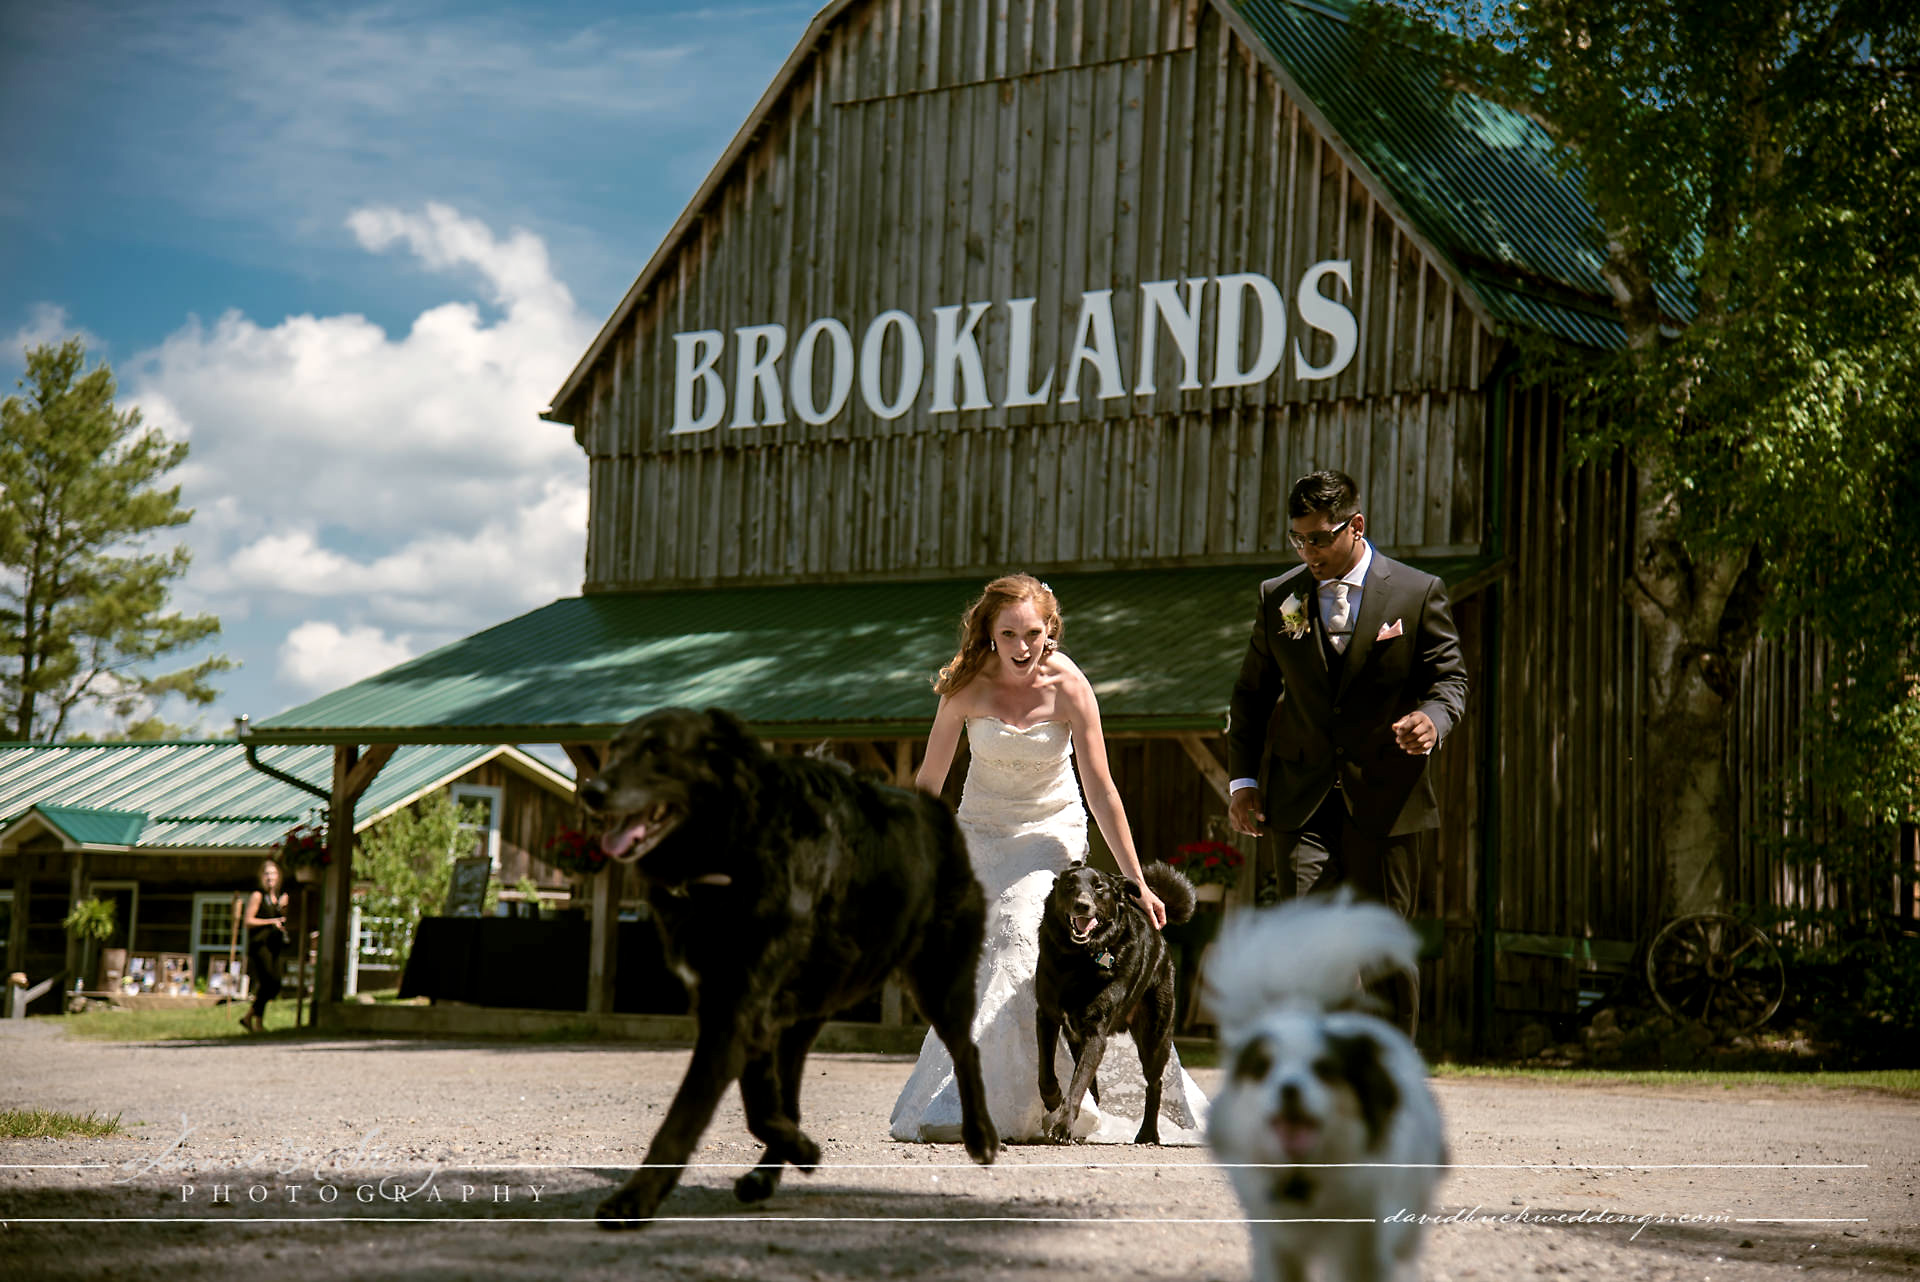 Brooklands_farm_wedding_11